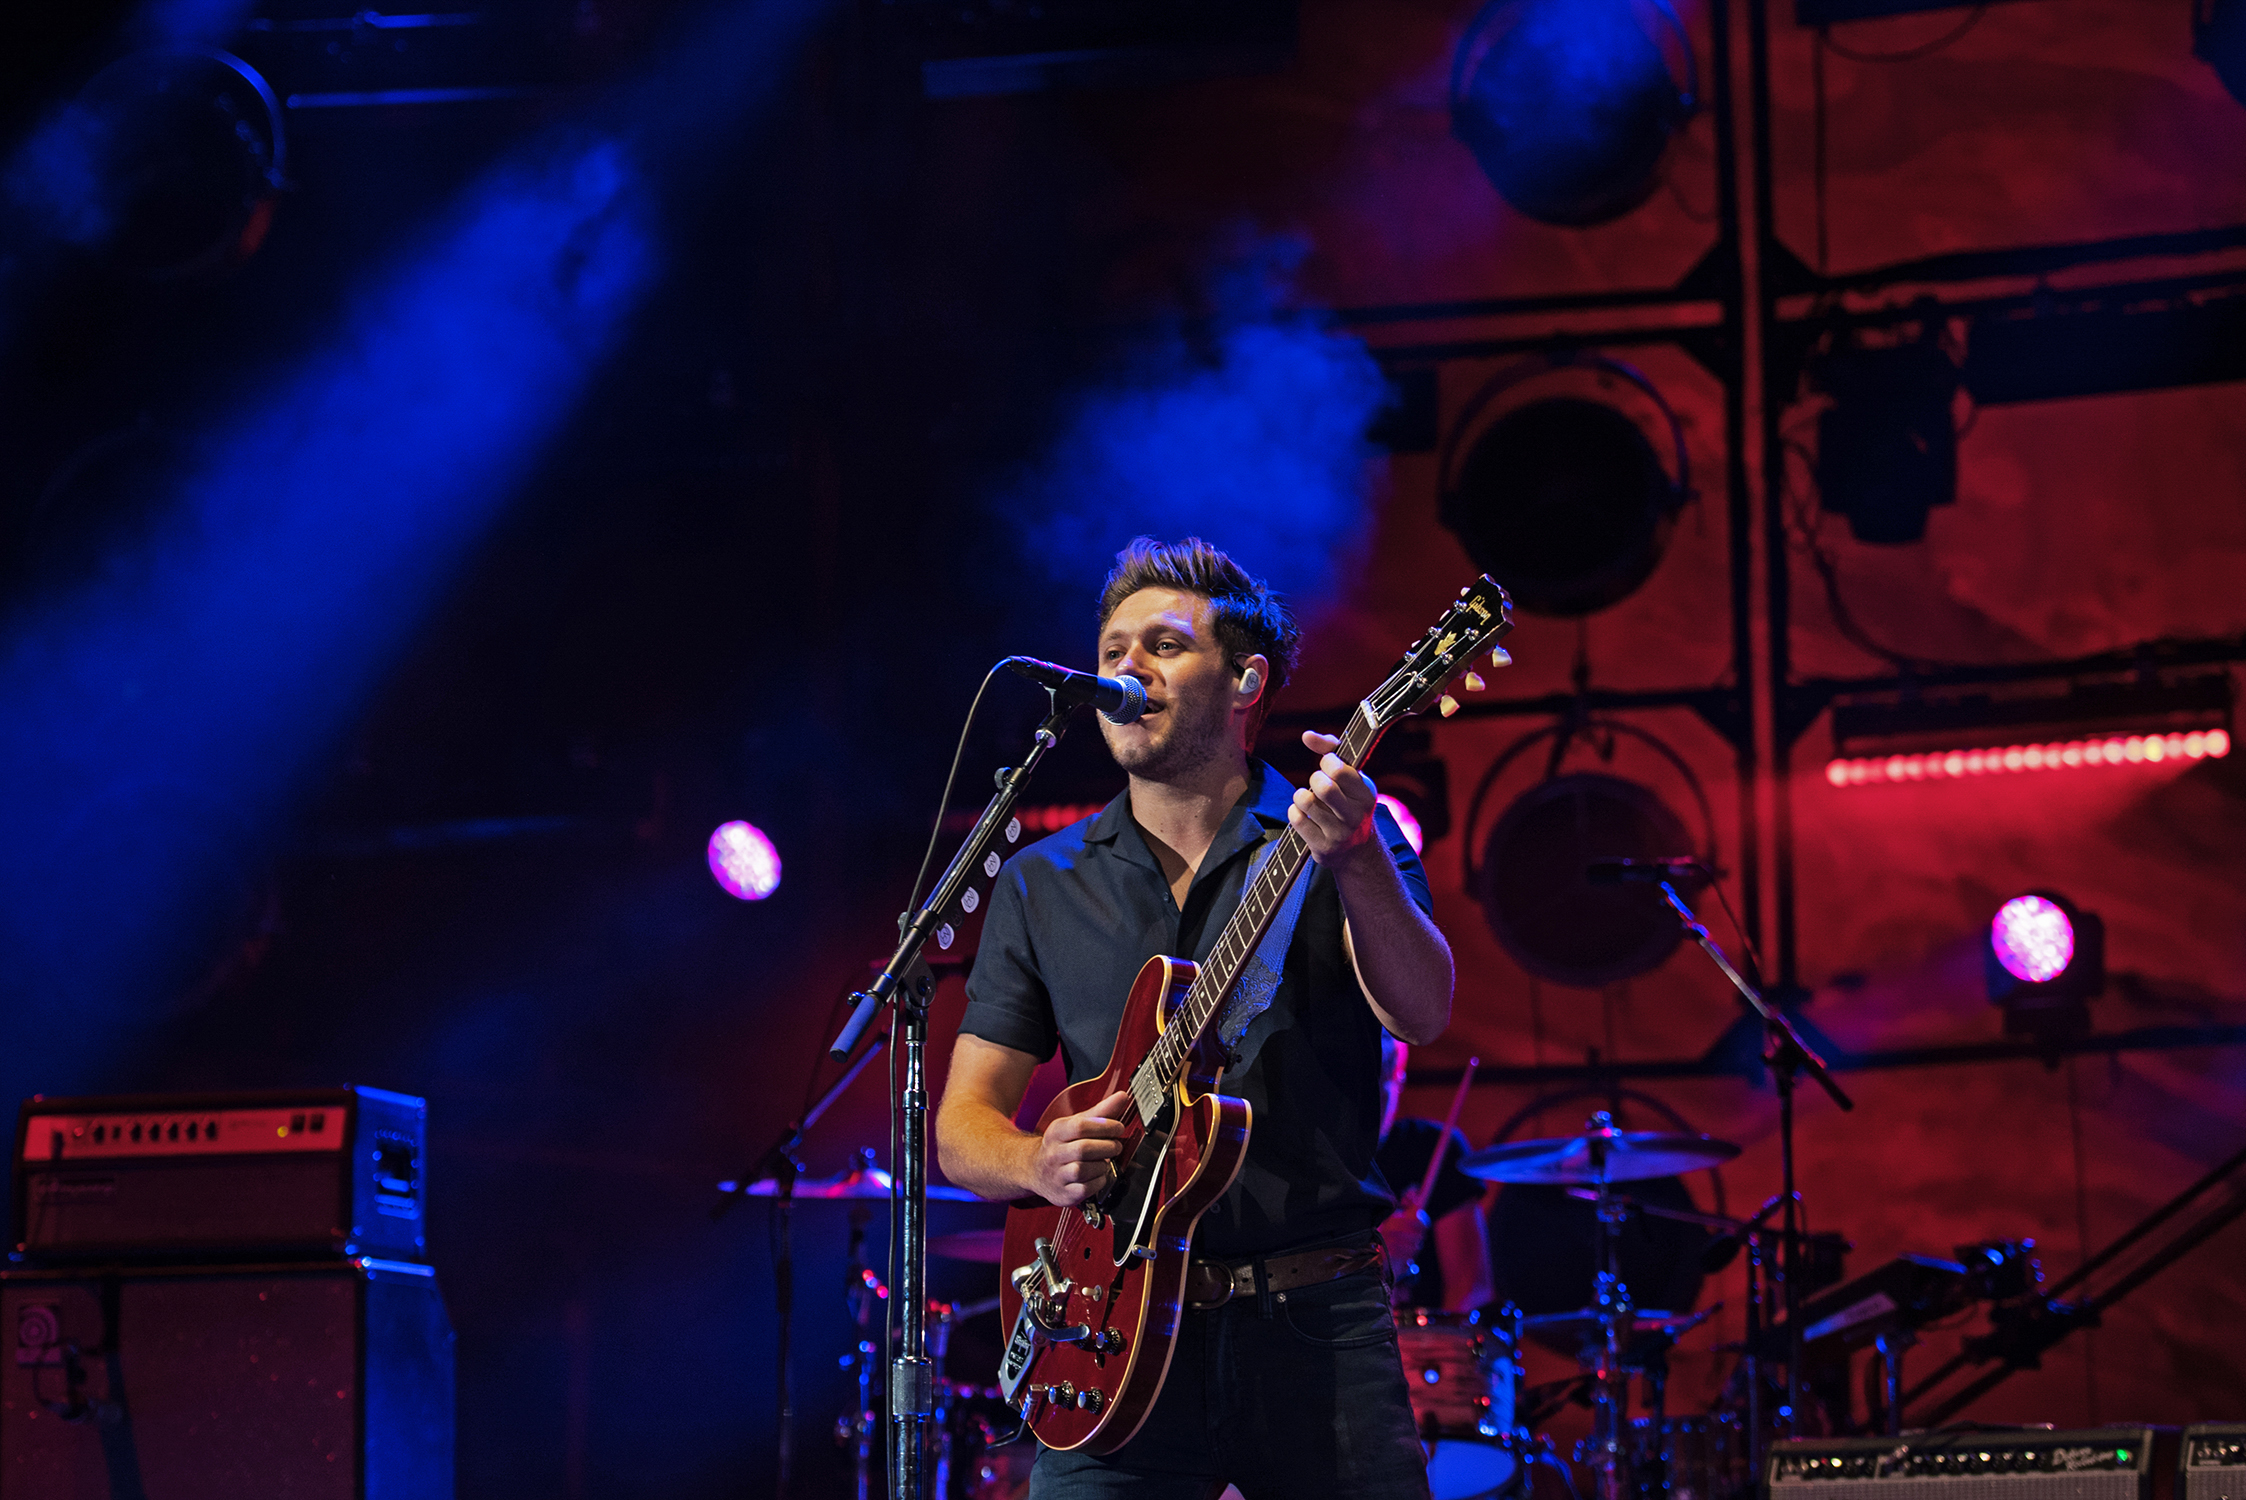 NiallHoranRedRocks8202018 (3 of 32).jpg